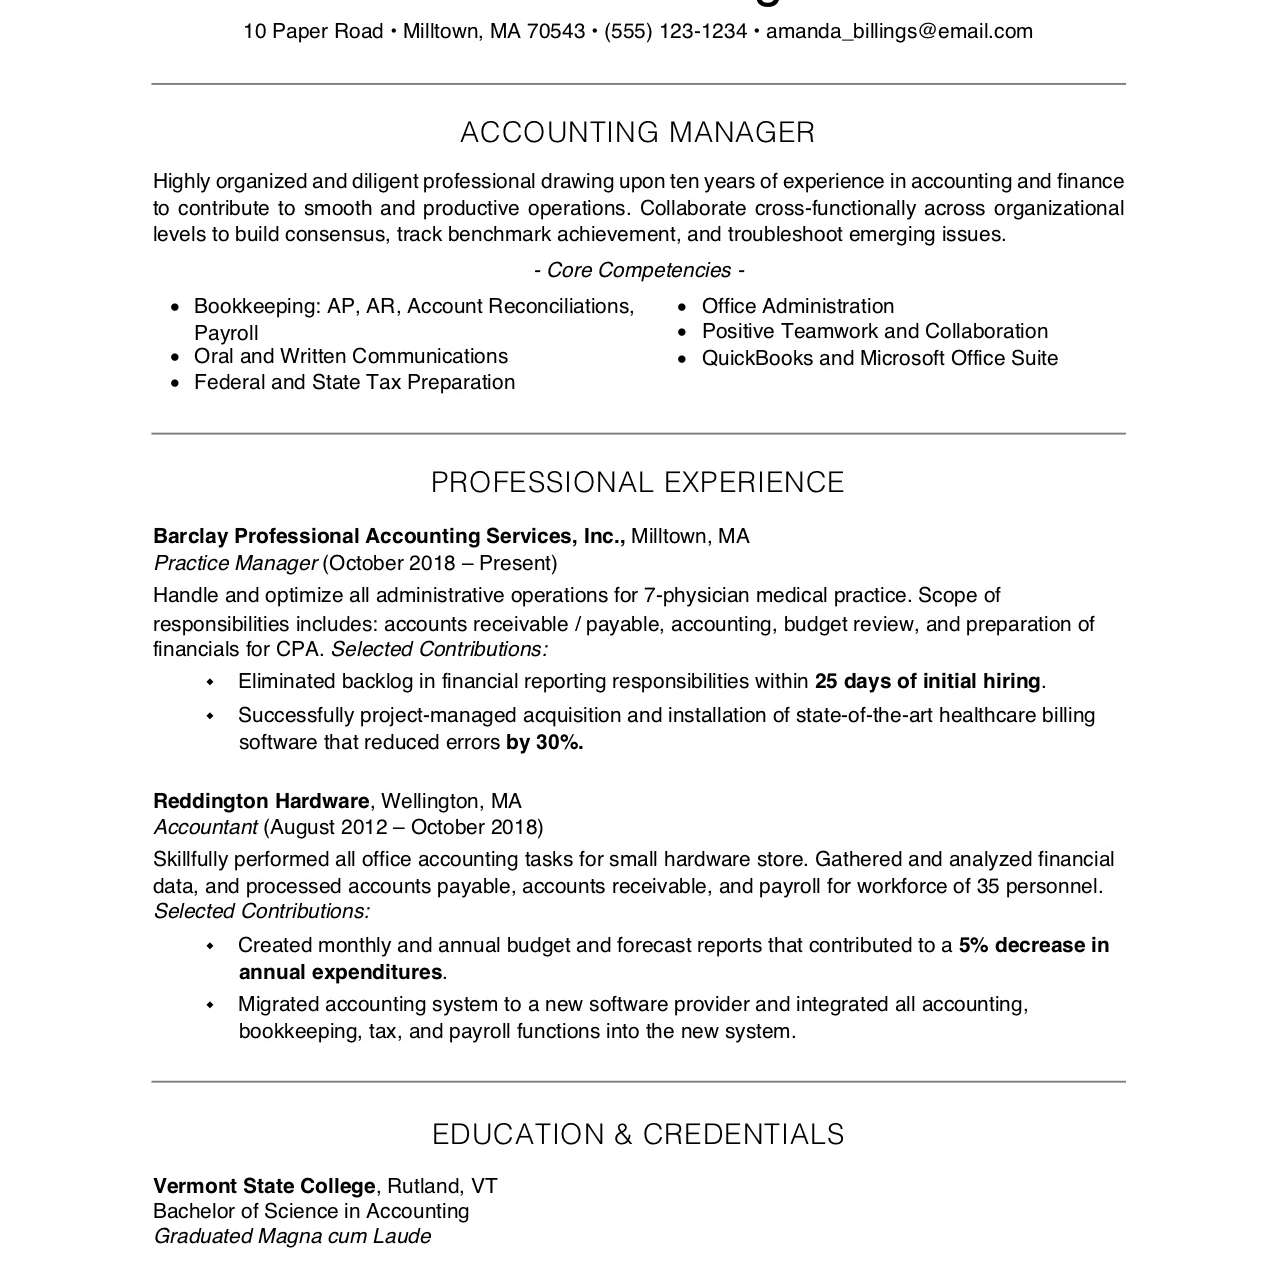 free professional resume examples and writing tips layout 2063596res1 dental office Resume Free Resume Layout Examples